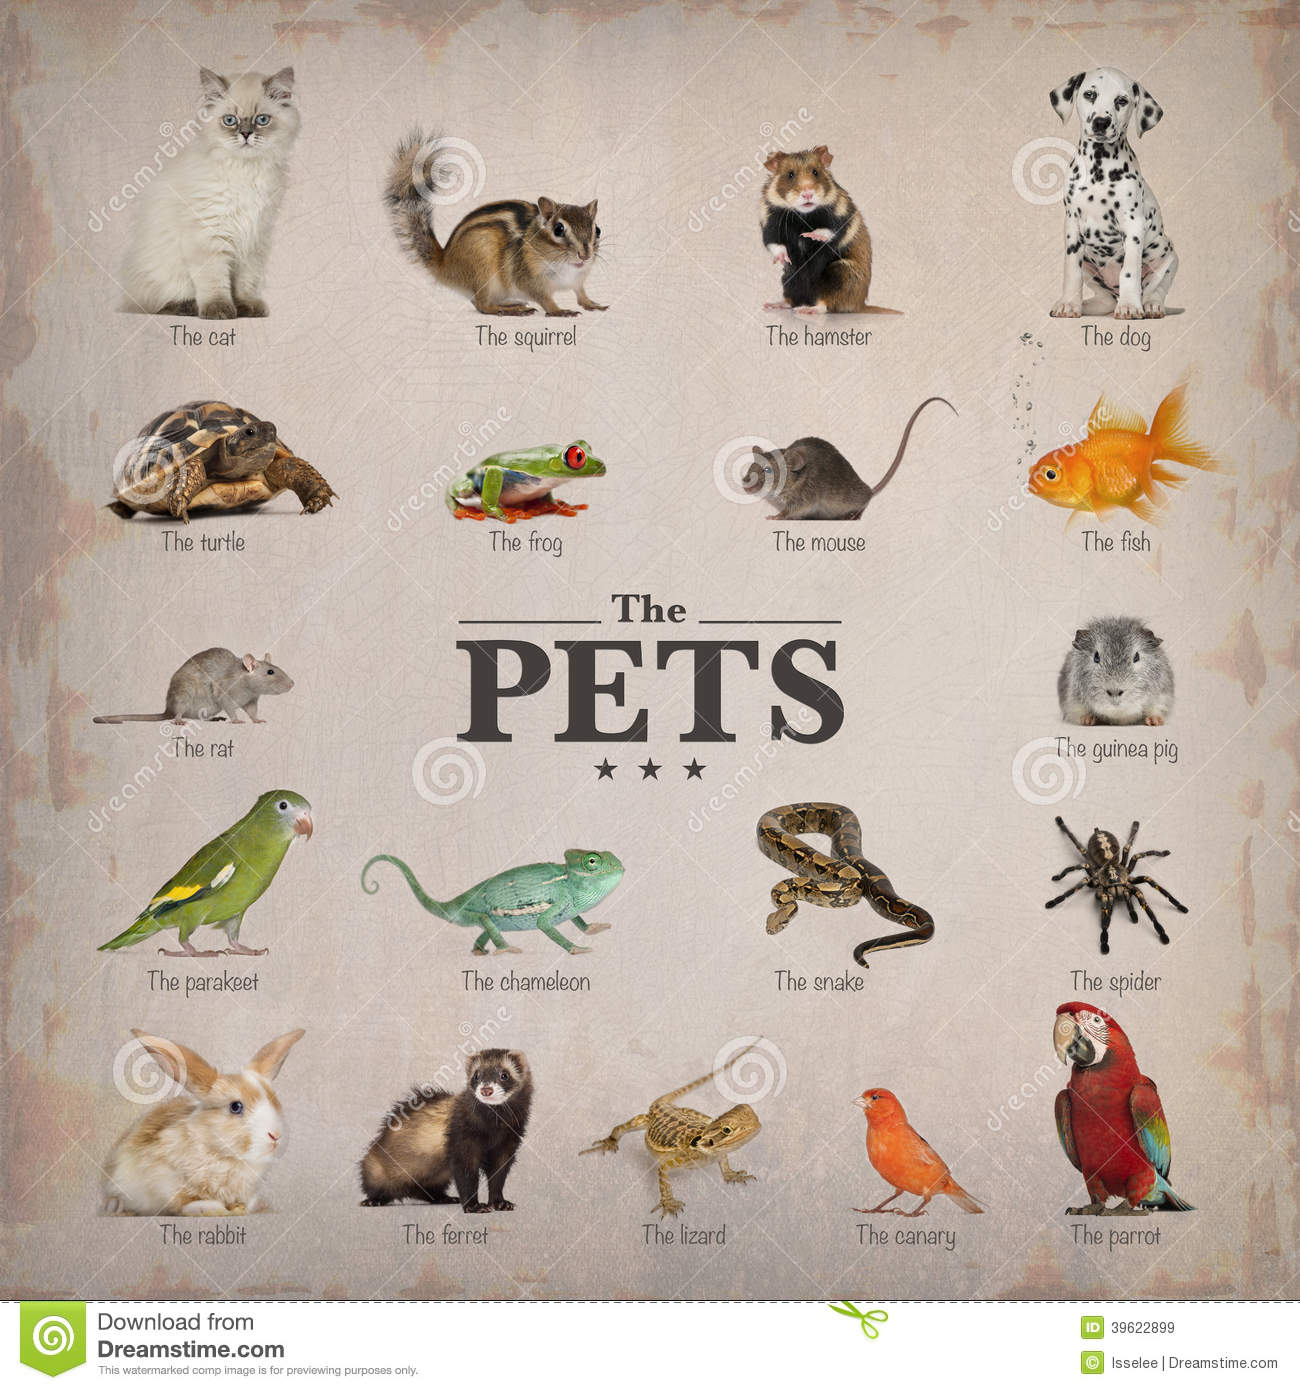 Poster Of Pets In English Stock Photo - Image: 39622899